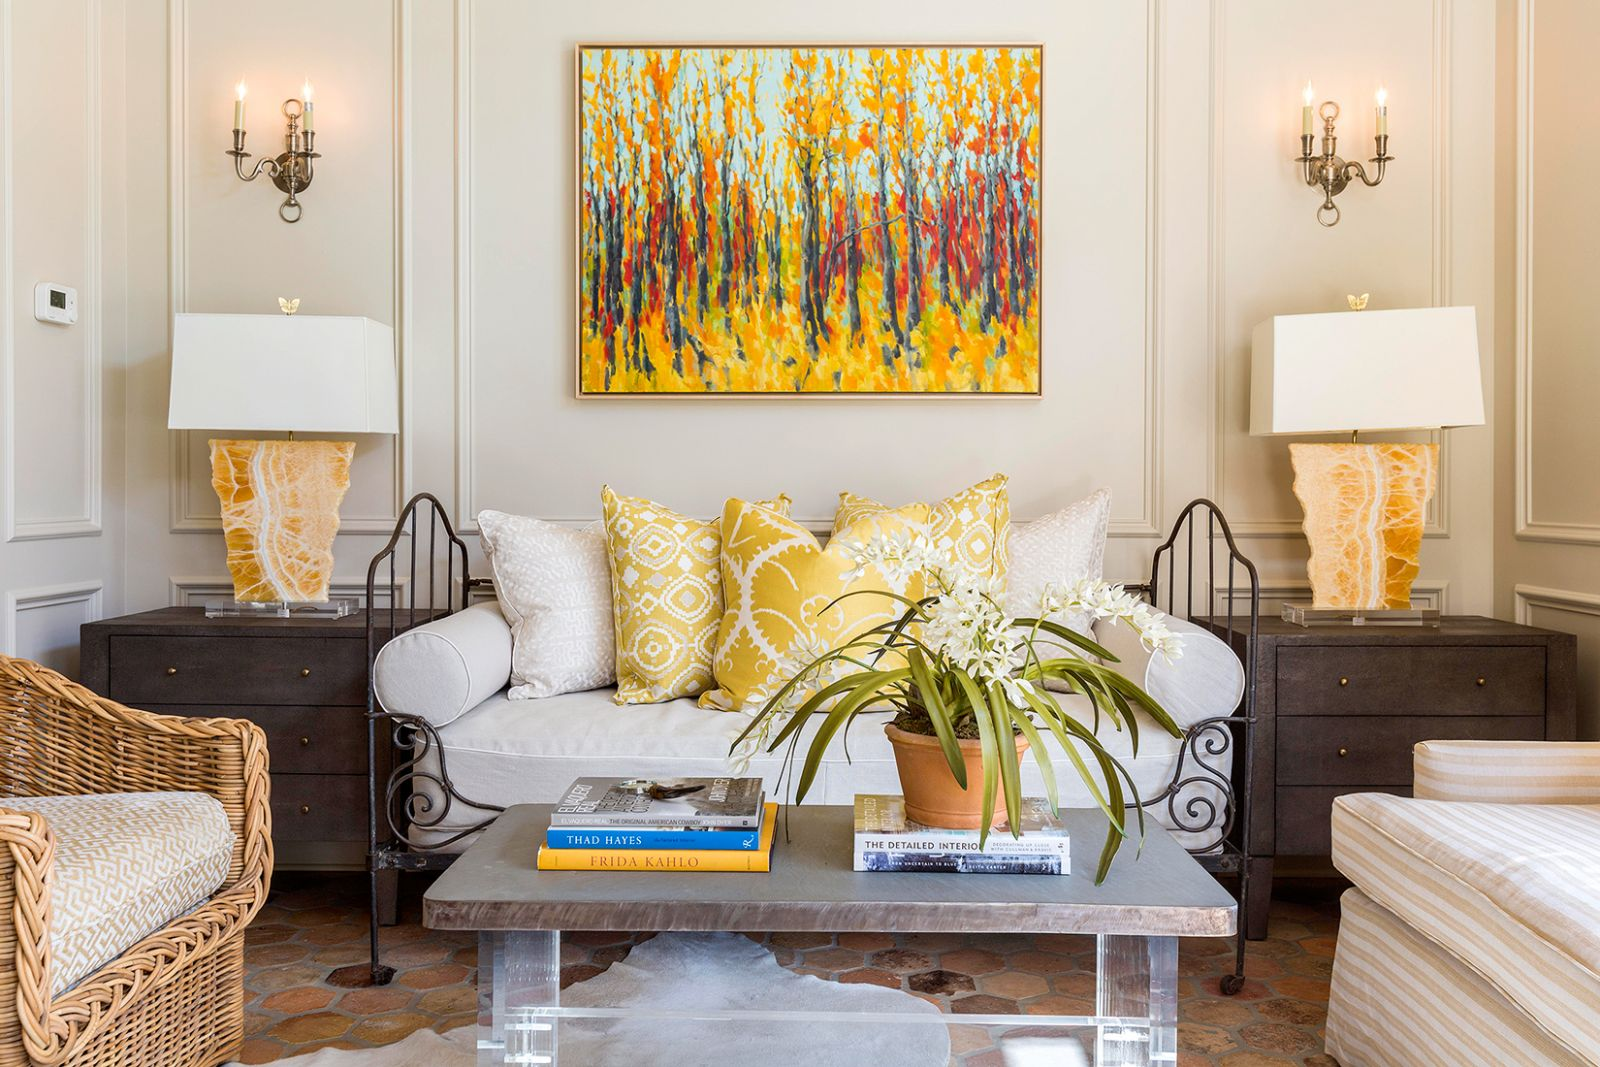 Decorating with Yellow | Better Homes & Gardens